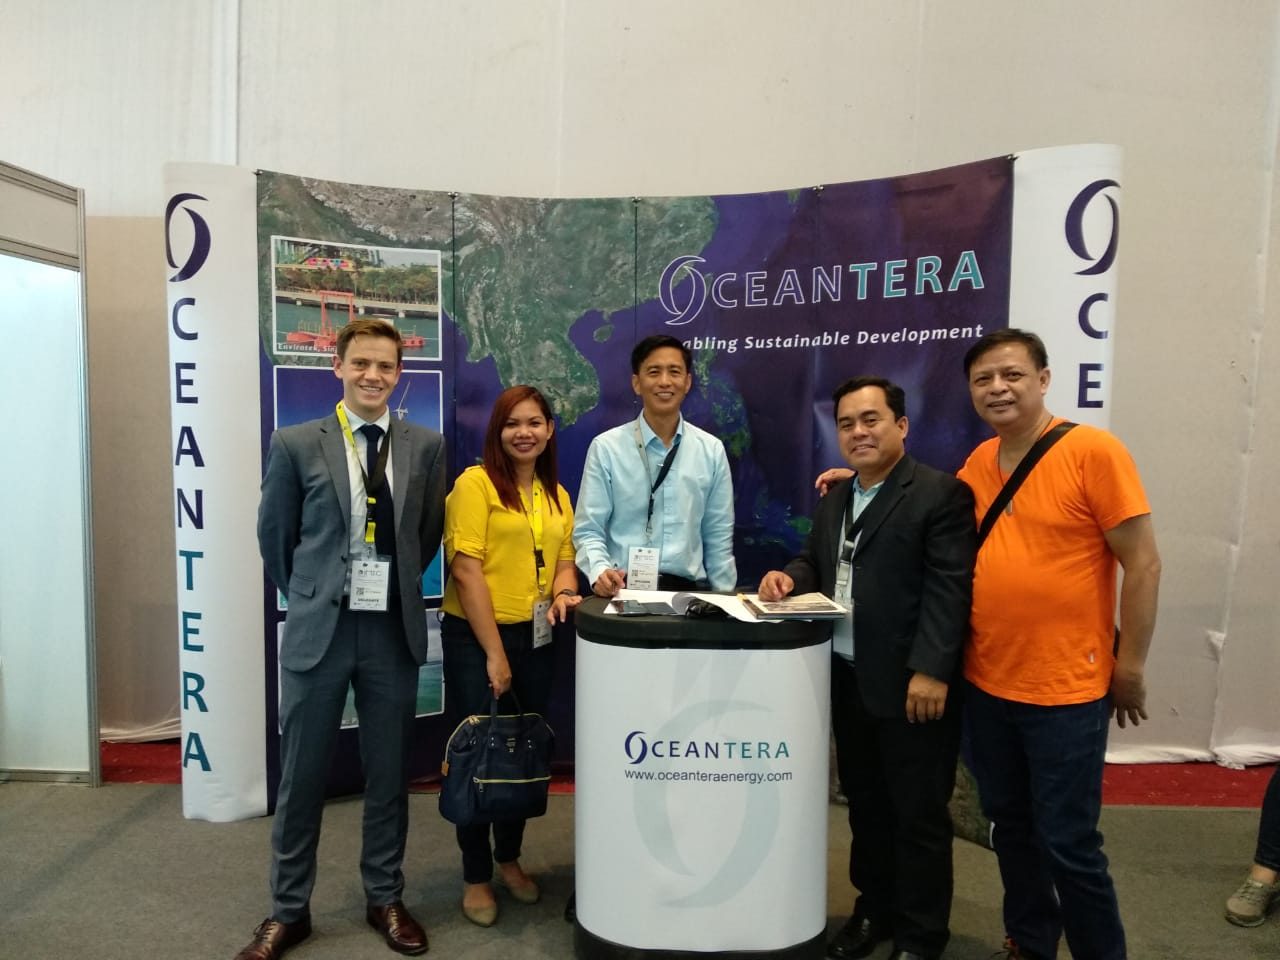 Oceantera meeting relevant stakeholders during the Philippine International Microgrid Exhibition and Conference 2018 in Cebu, Philippines.